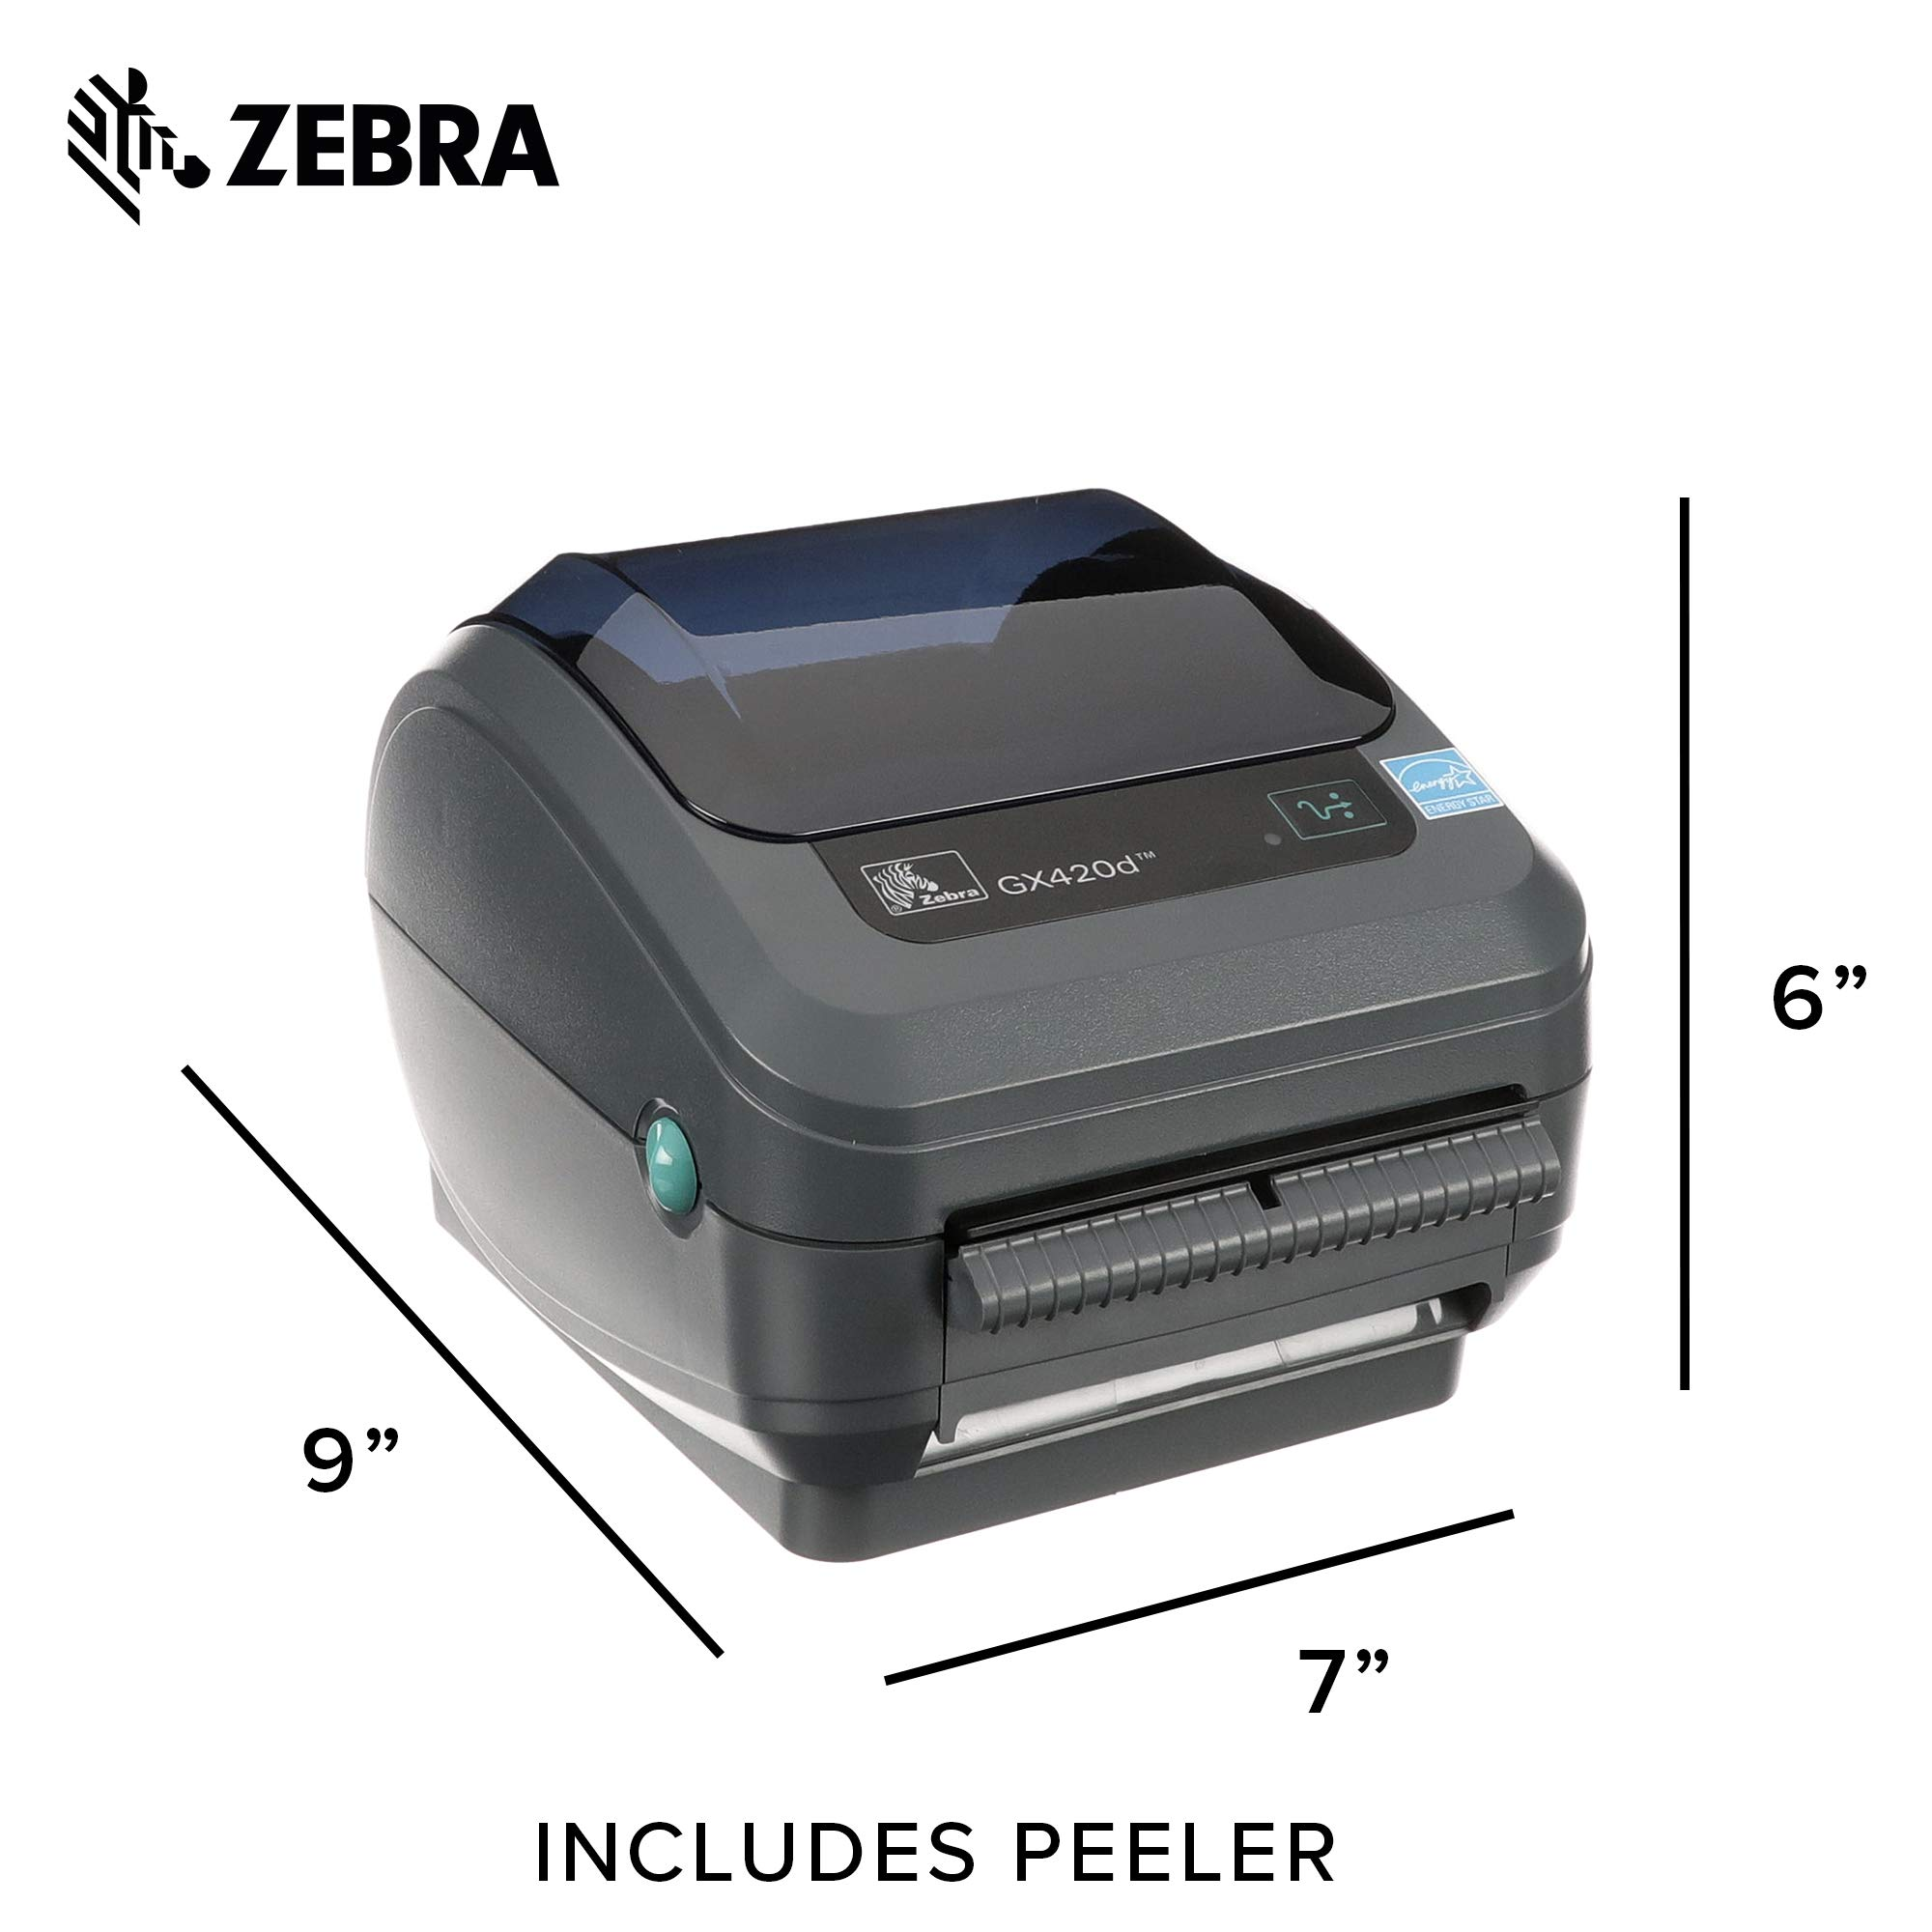 Zebra - GX420d Direct Thermal Desktop Printer for Labels, Receipts, Barcodes, Tags, and Wrist Bands - Print Width of 4 in - USB, Serial, and Ethernet Port Connectivity (Includes Peeler) by ZEBRA (Image #6)